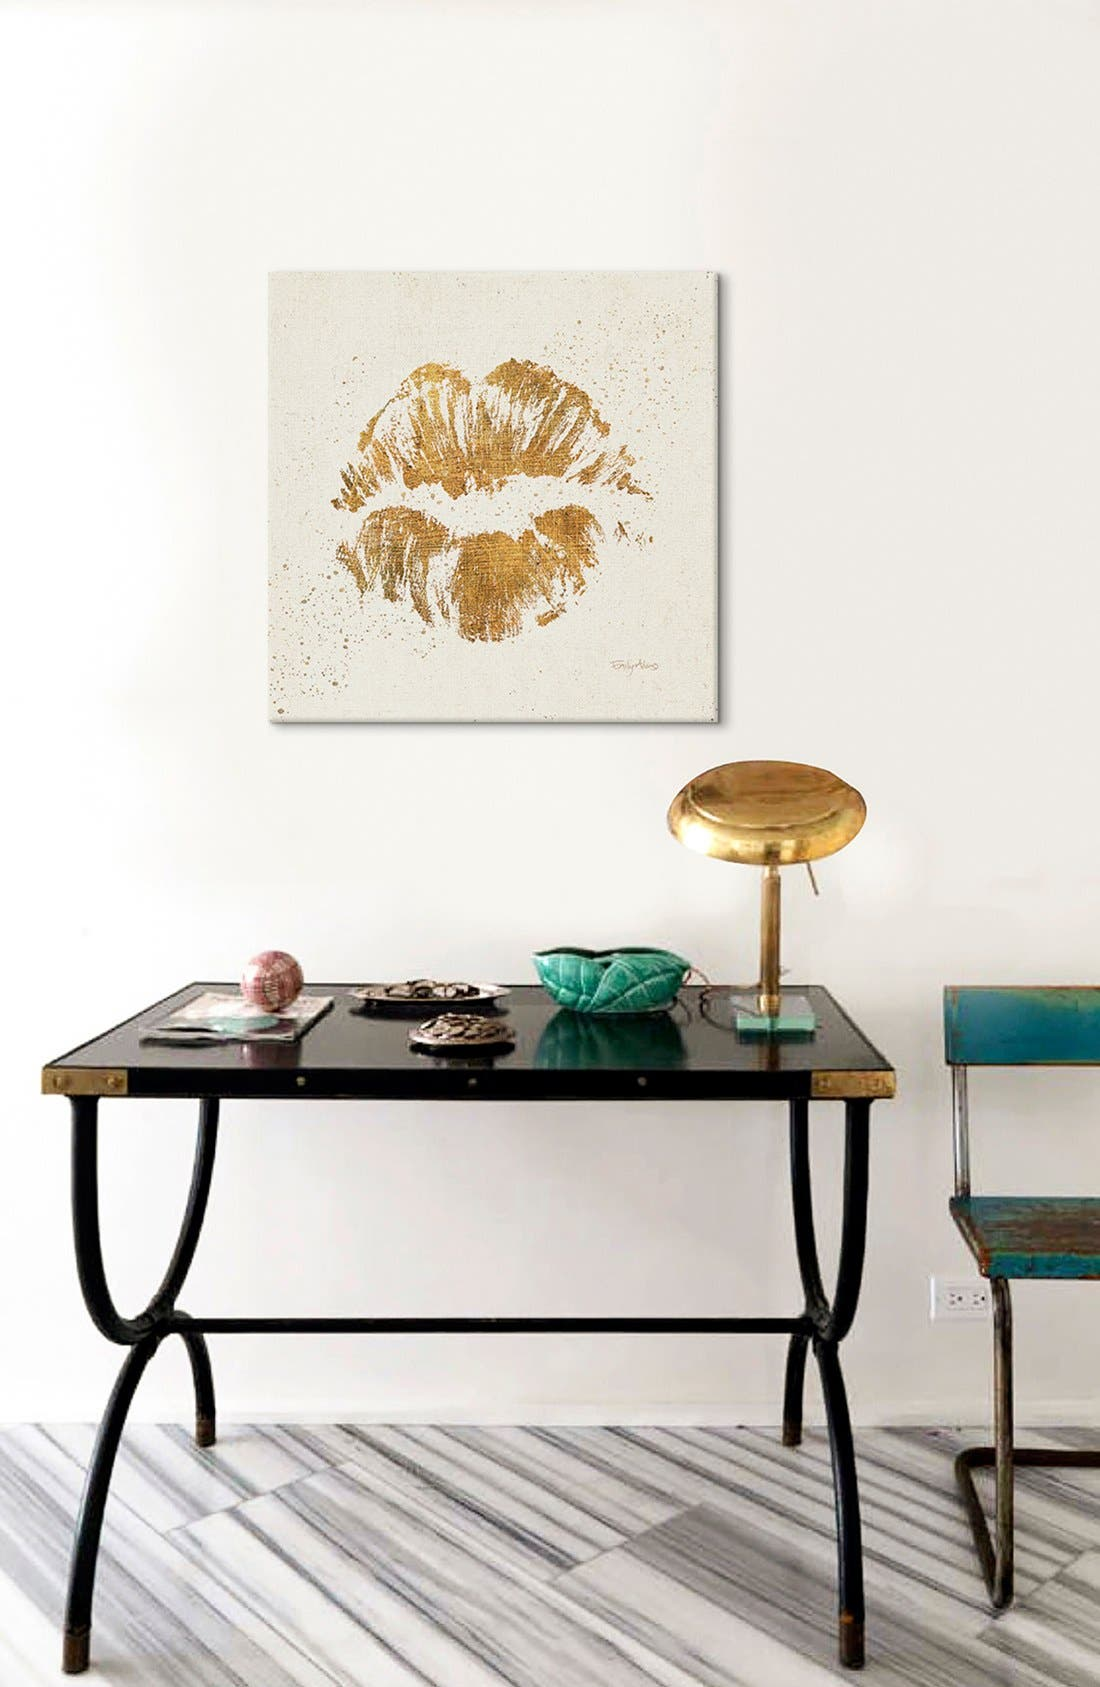 'Golden Lips' Giclée Print Canvas Art,                             Alternate thumbnail 2, color,                             Beige